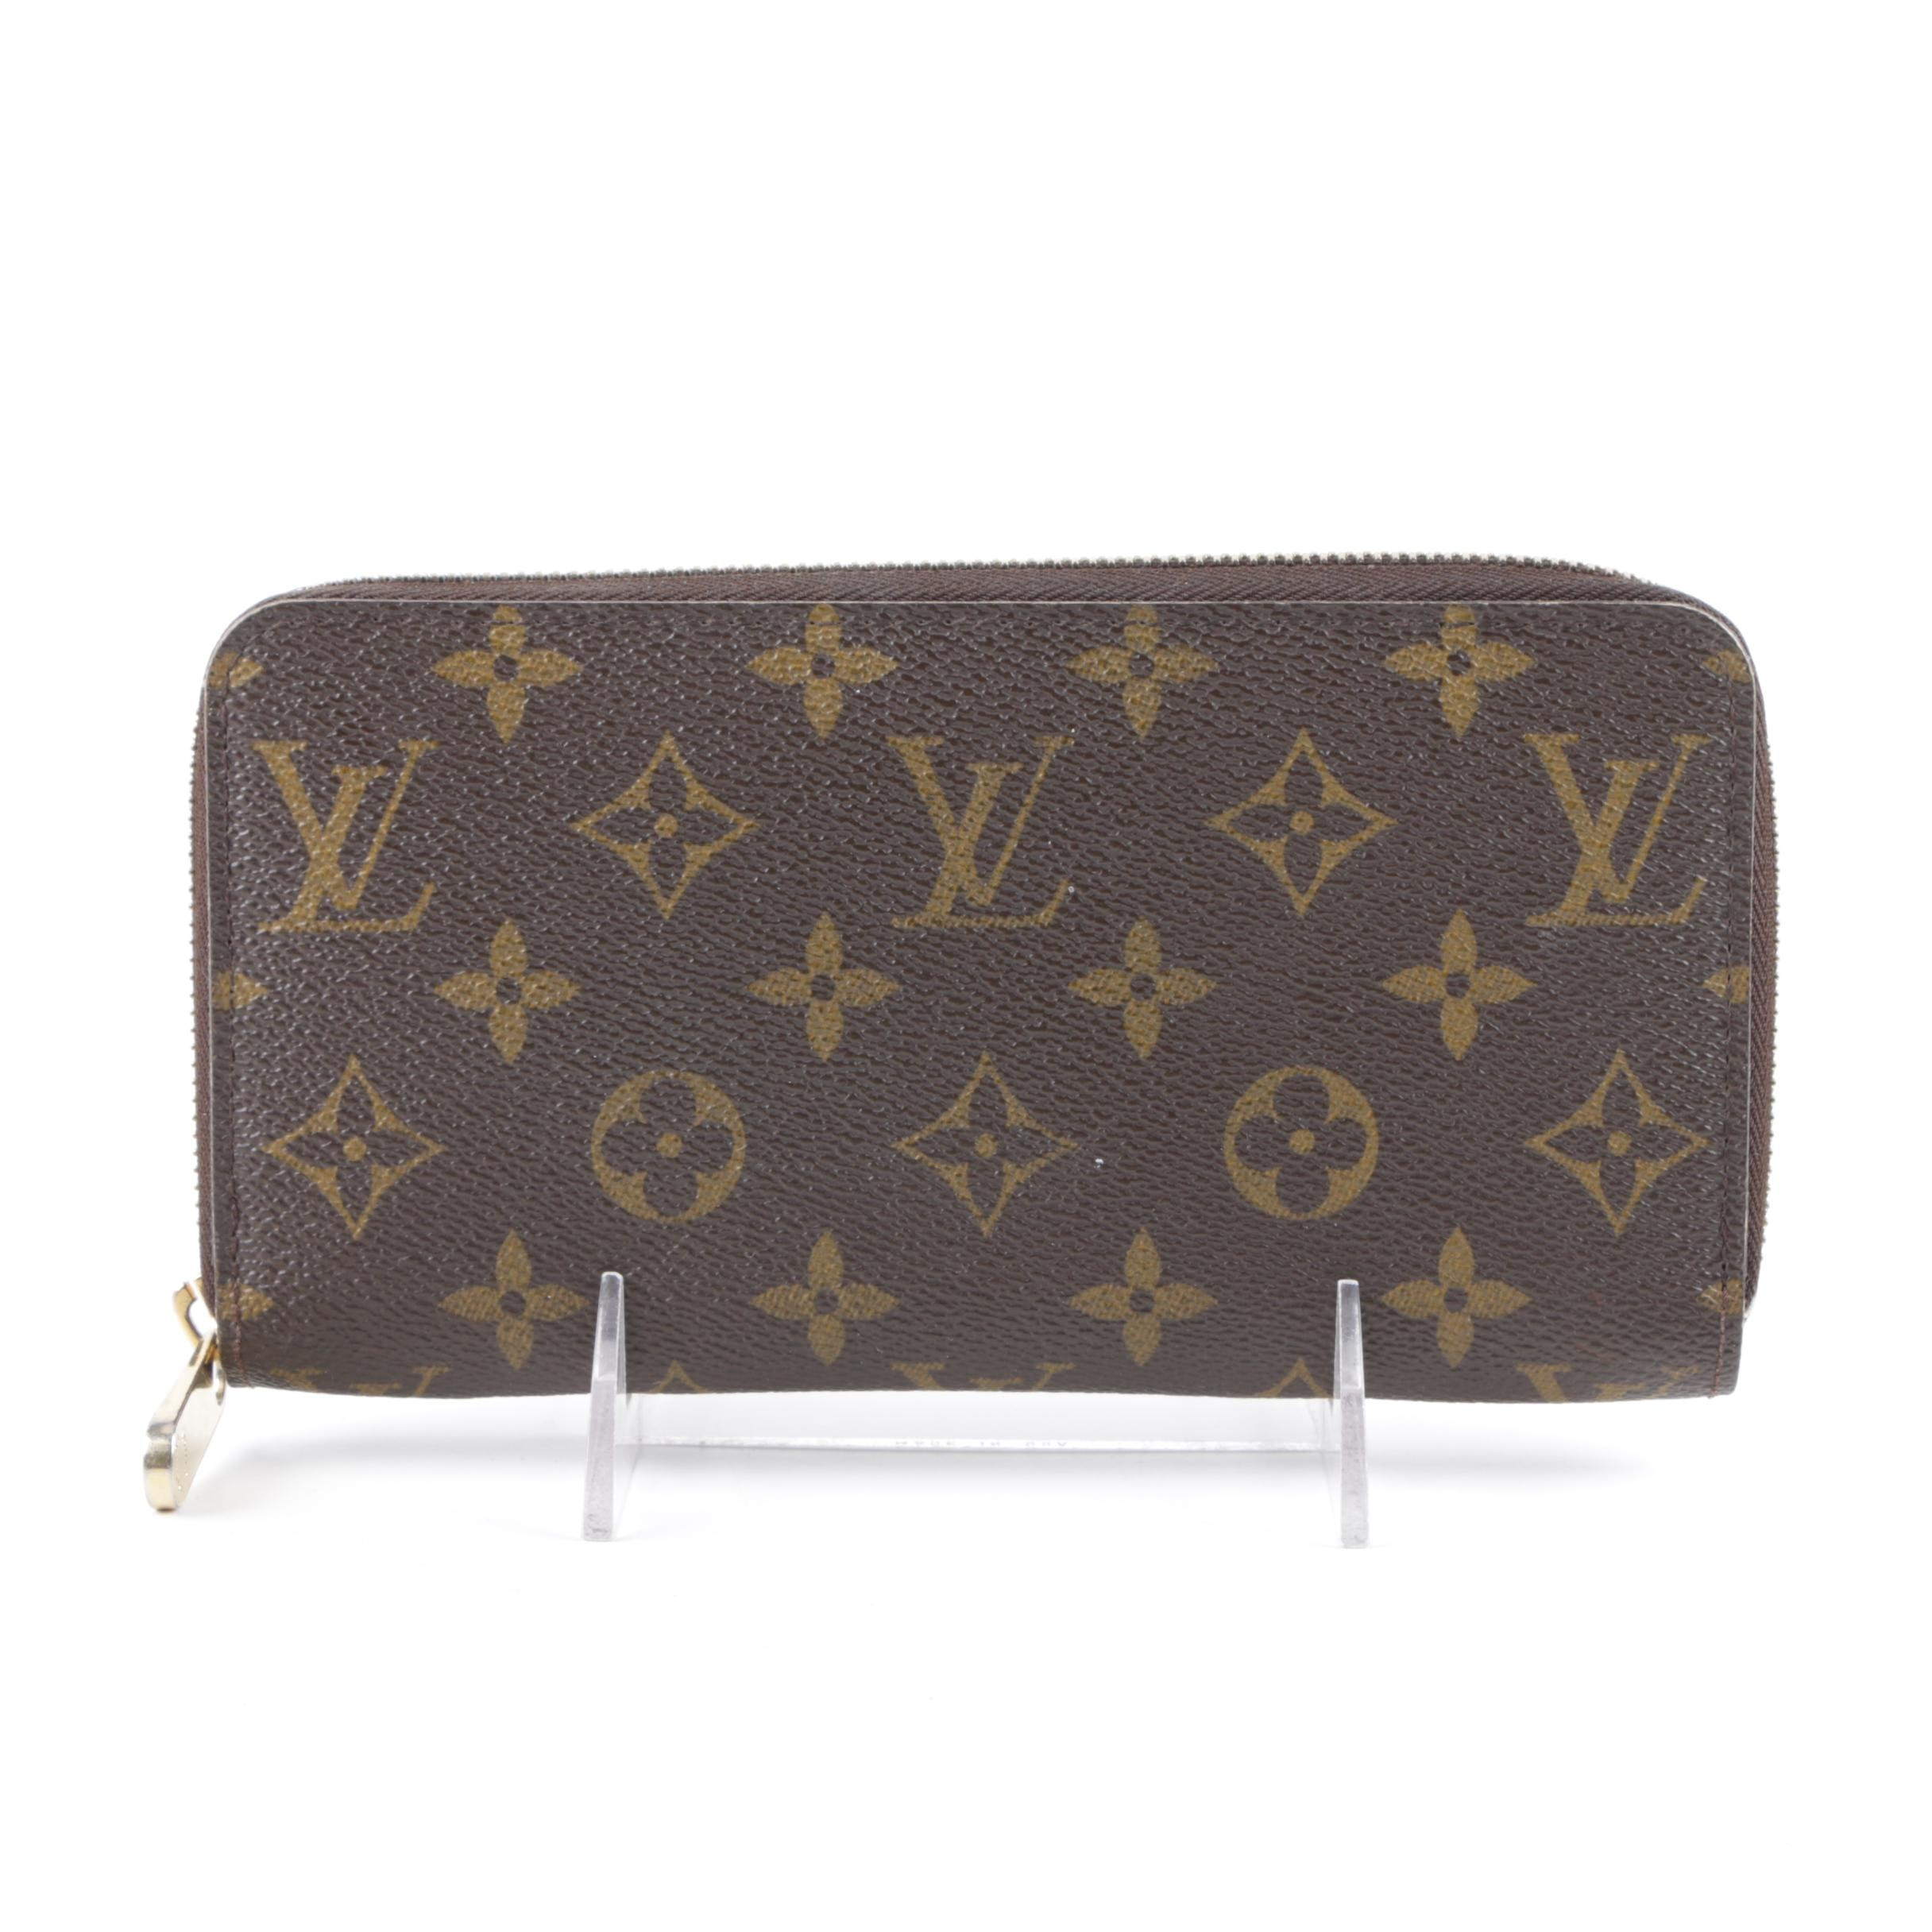 Louis Vuitton of Paris Monogram Canvas Clutch Wallet